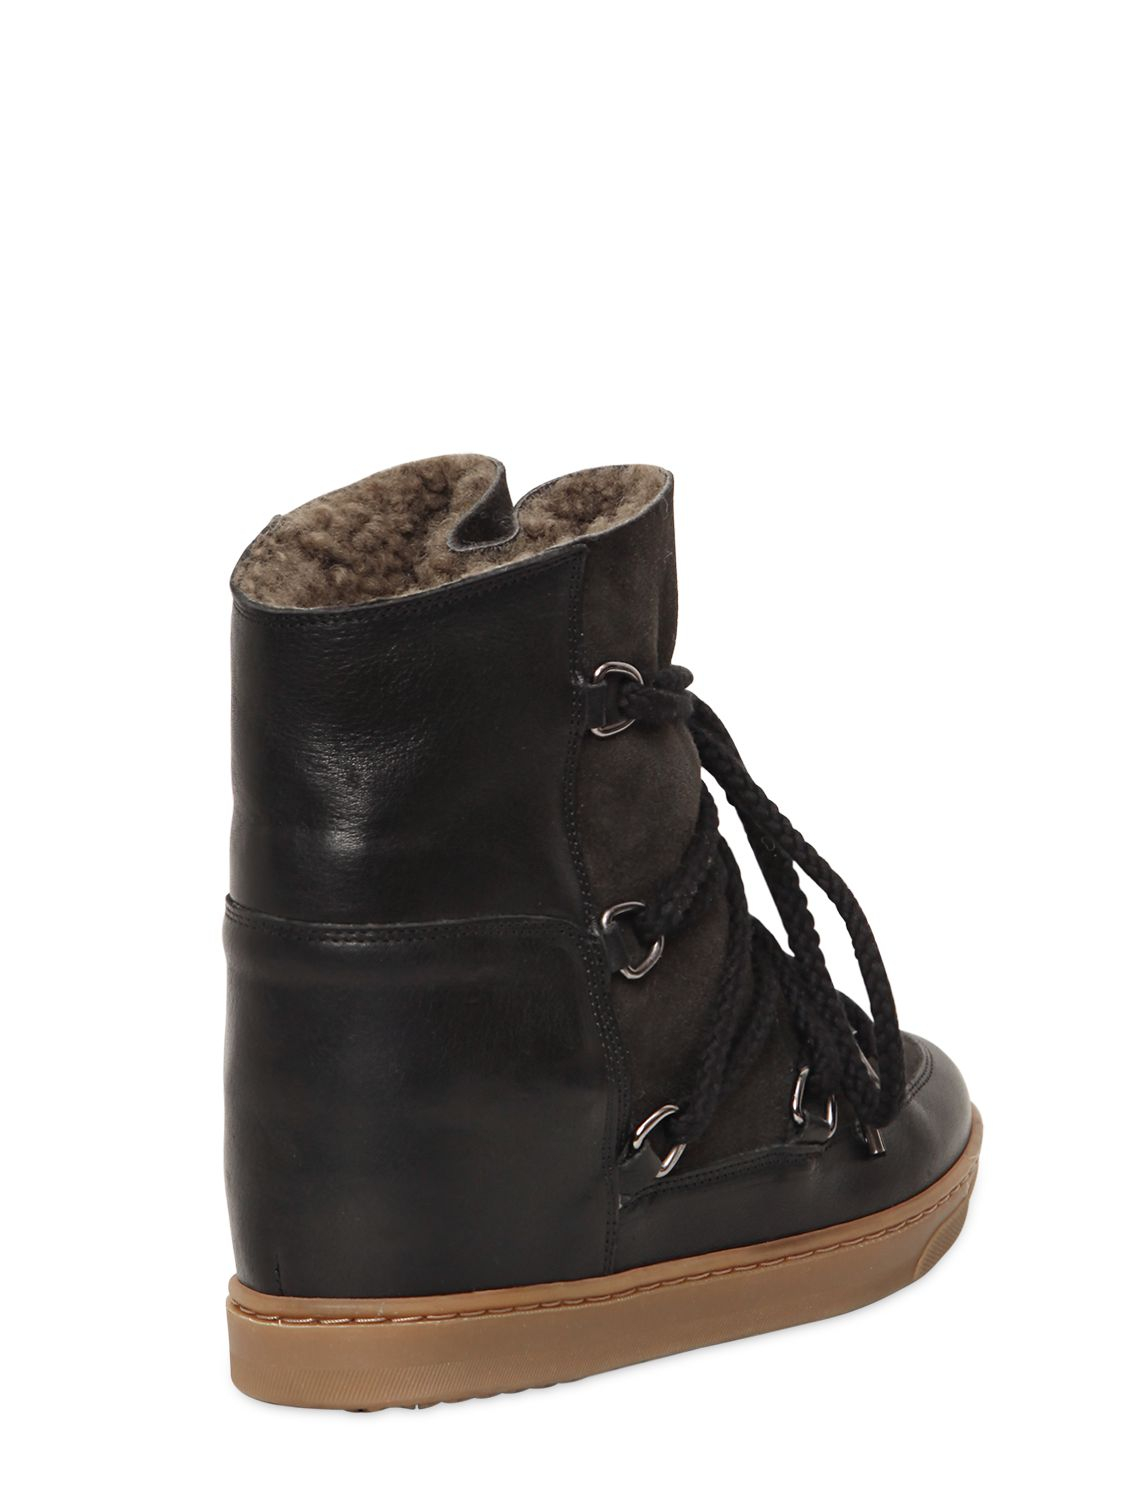 Isabel Marant 70mm Nowles Suede Shearling Boots In Black